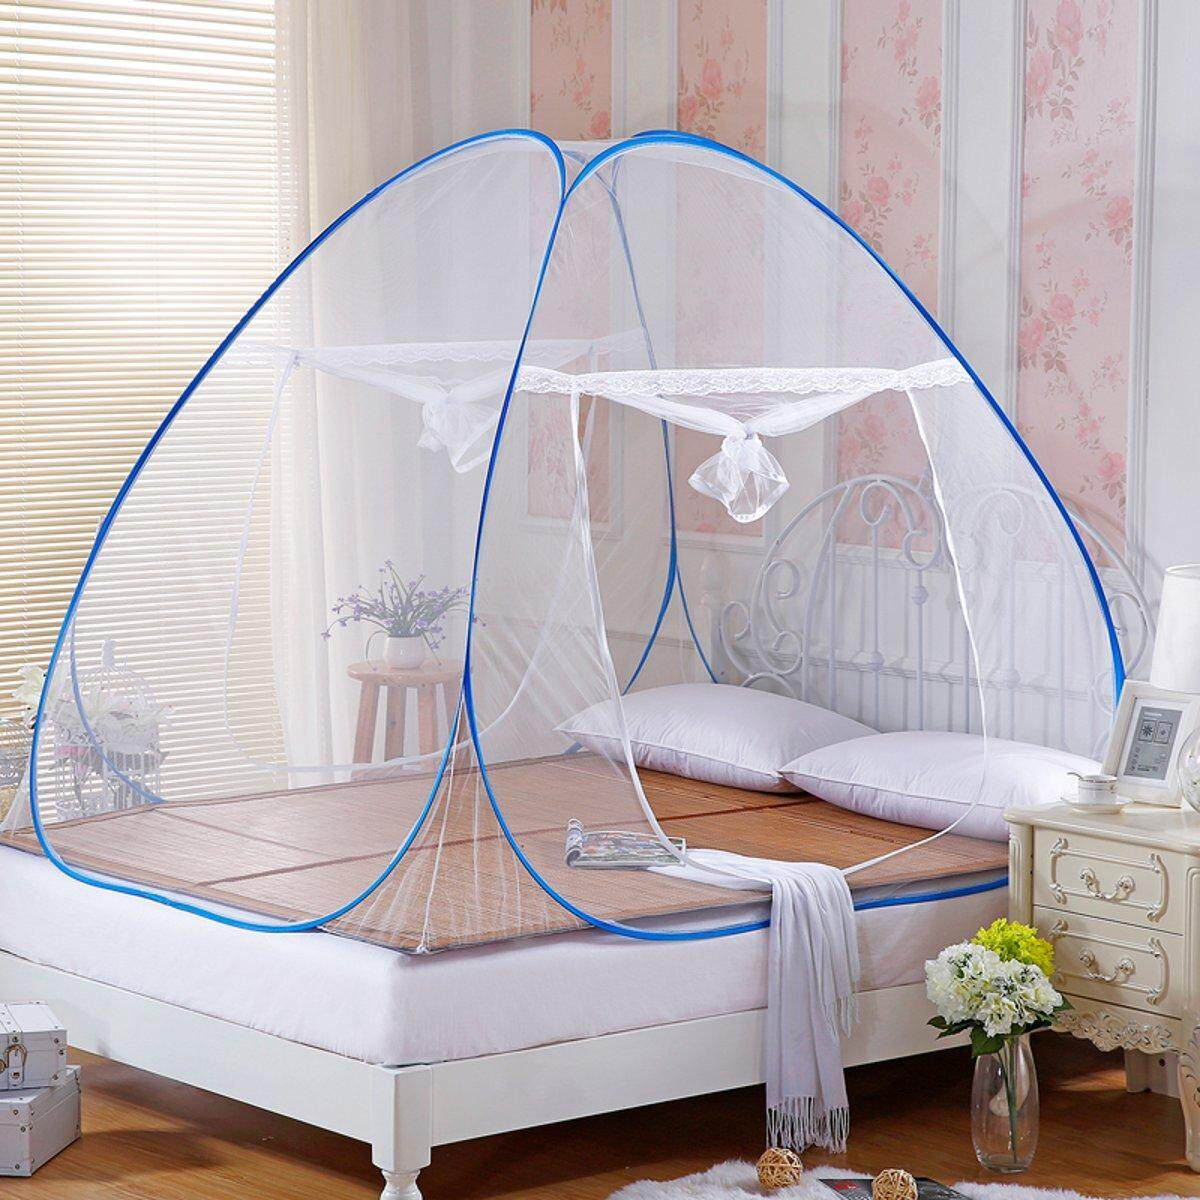 Easy Pop Up Fold Free Standing Automatic Tent Mosquito Netting Insect Protection  190 X 120 X 145cm By Glimmer.